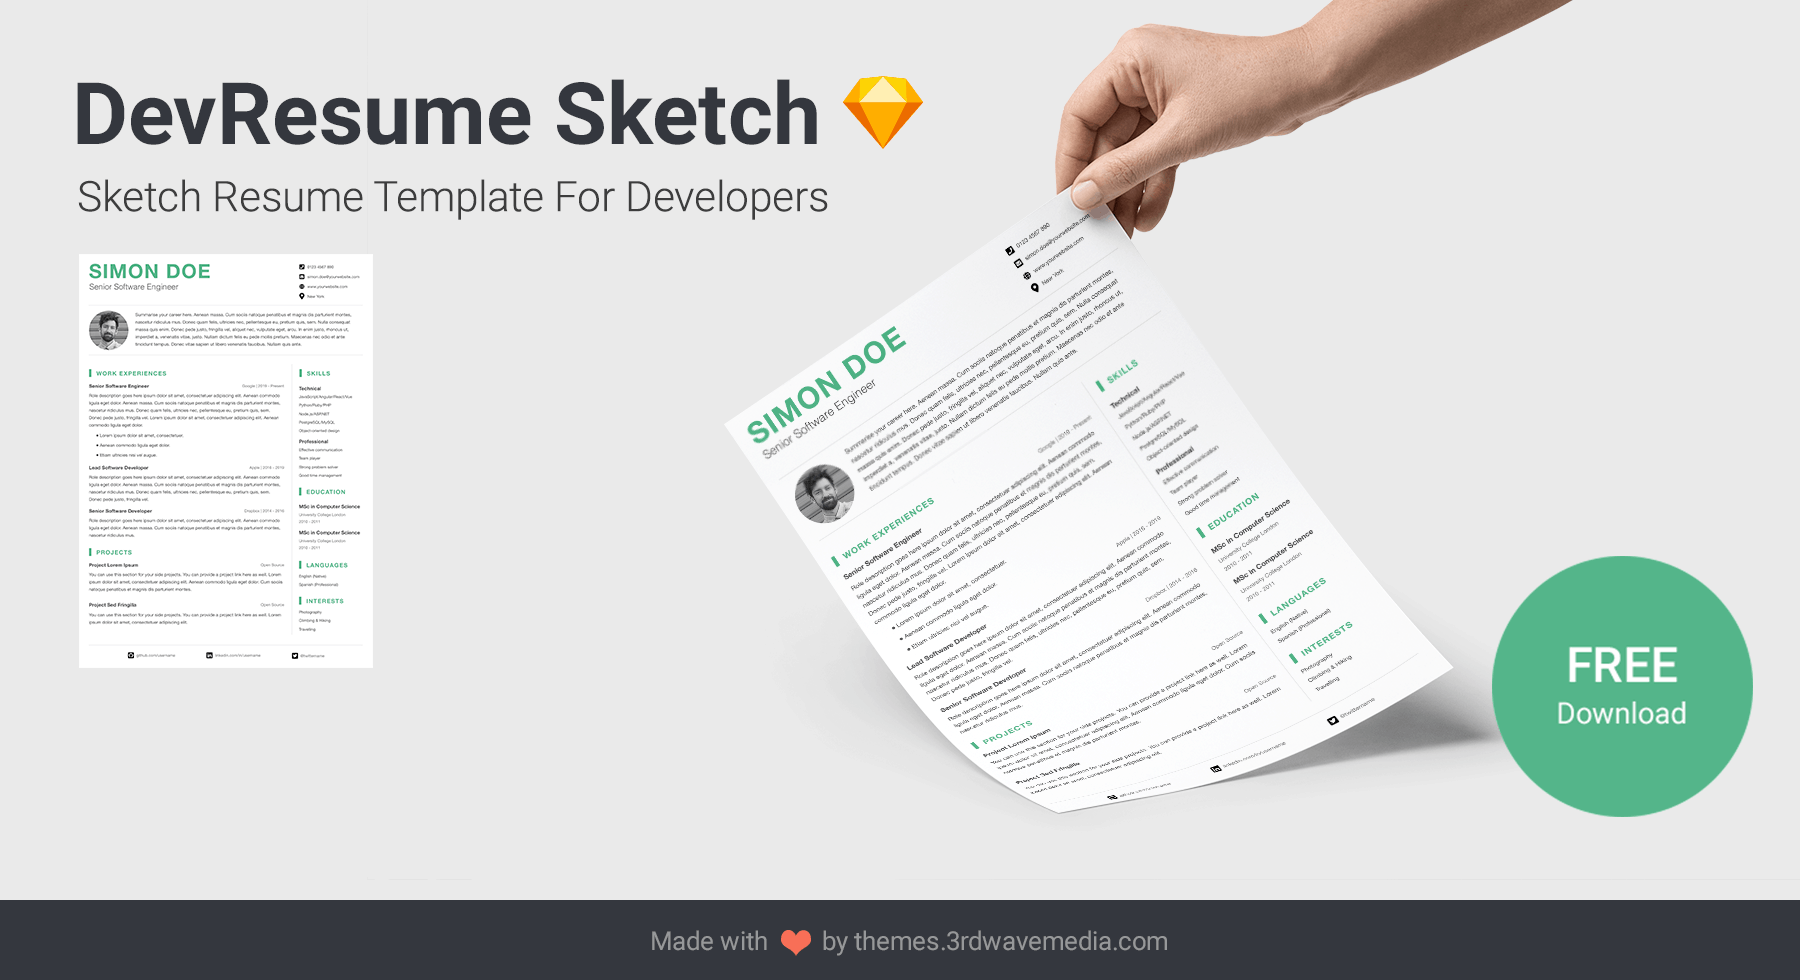 Devresume Sketch Free Sketch Resume Template For Software